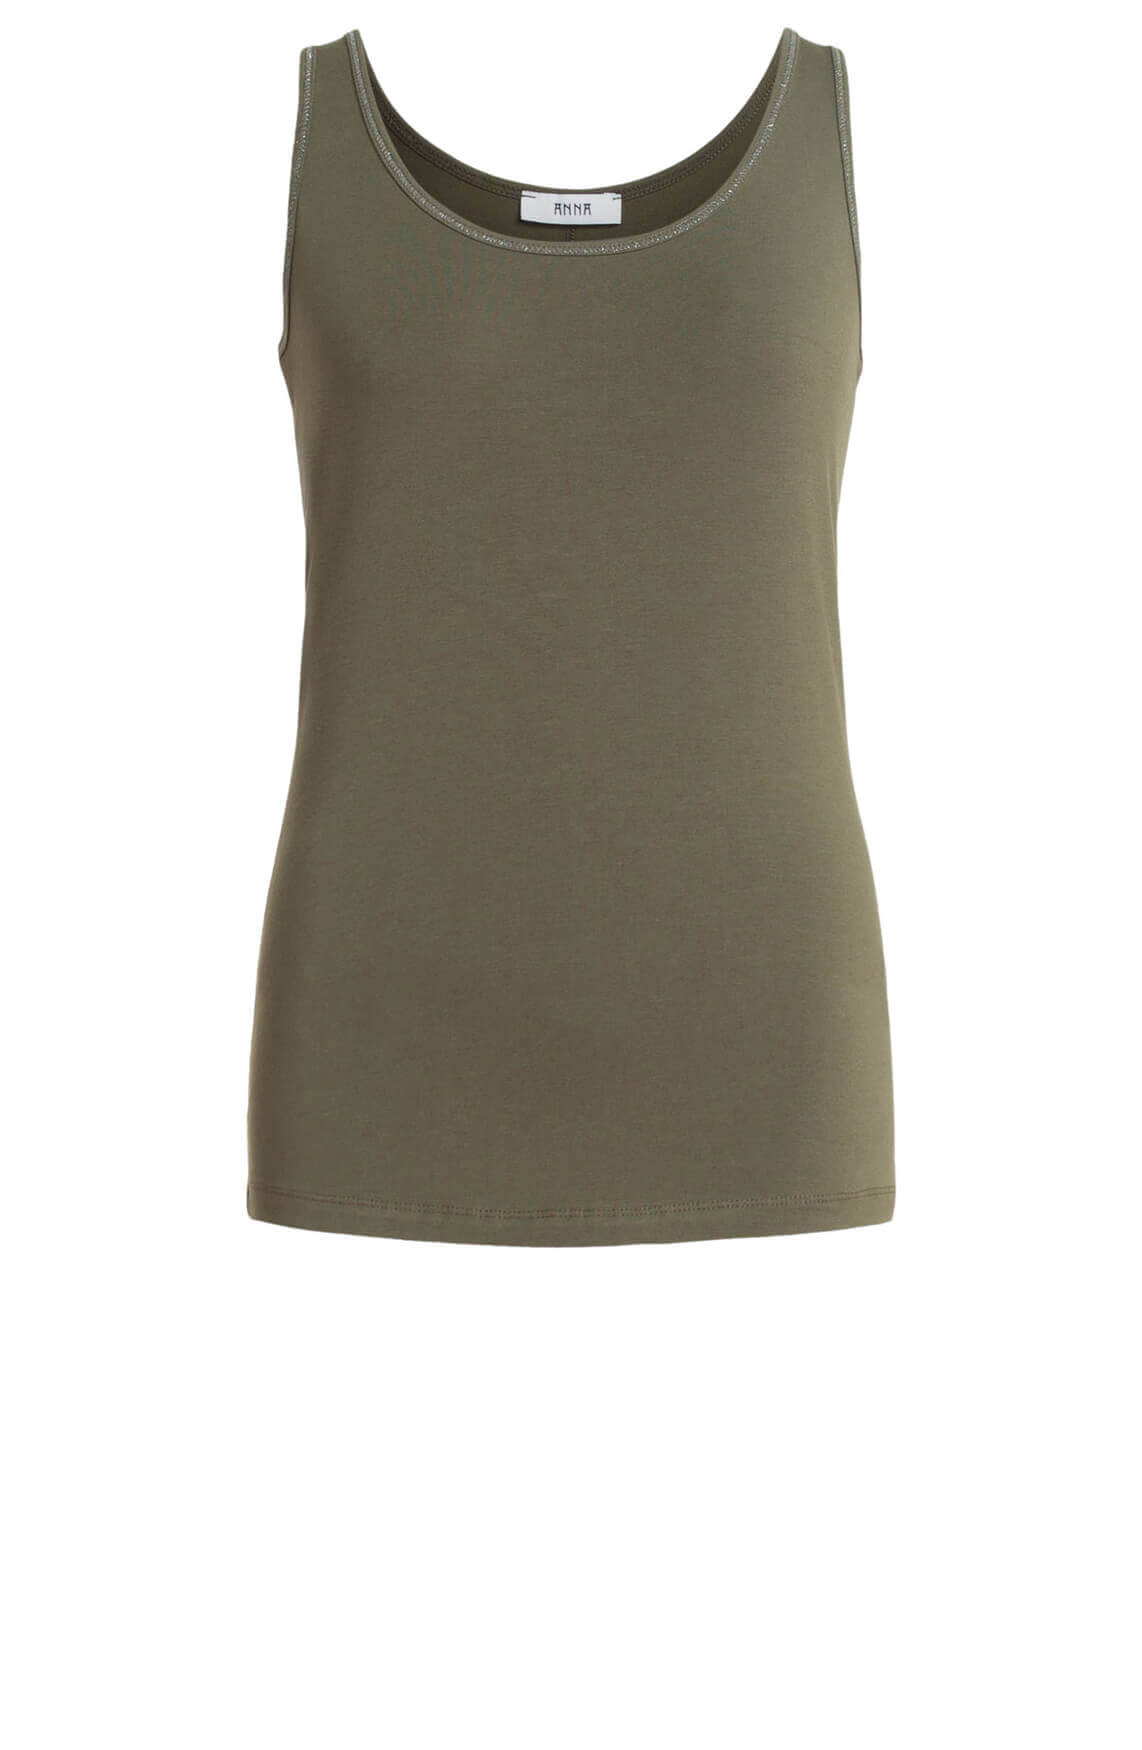 Anna Dames Top met lurex groen